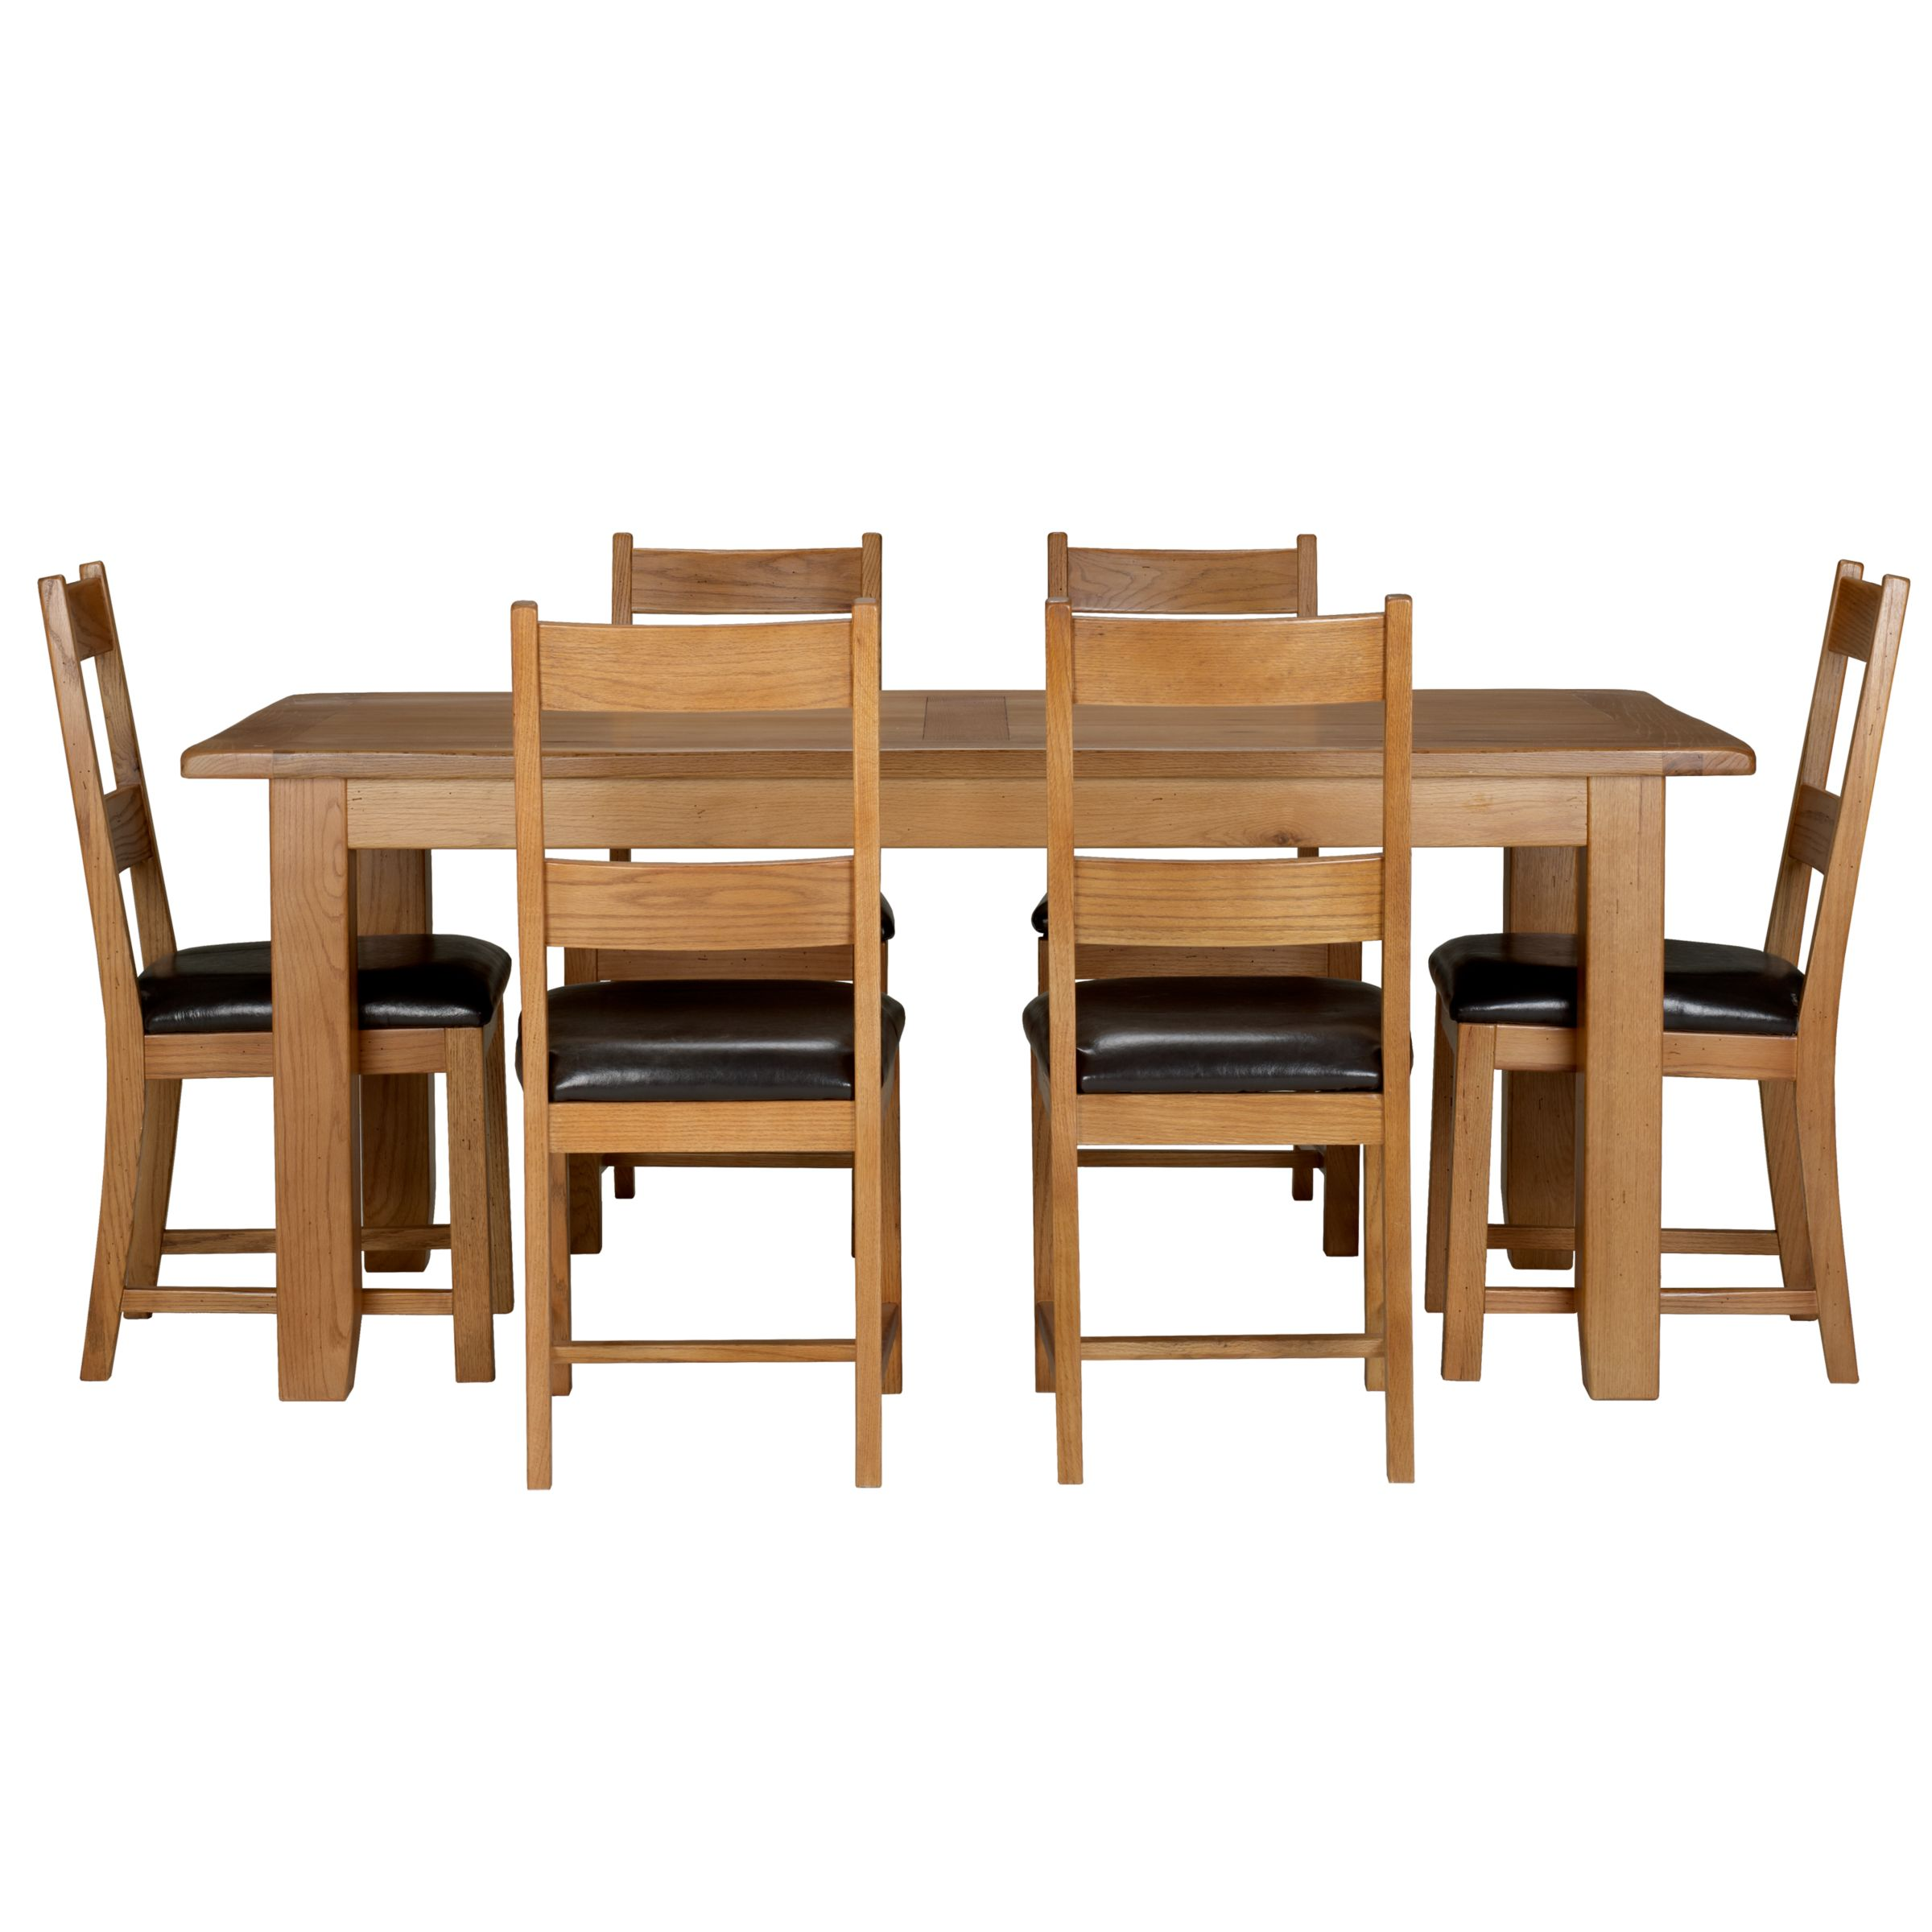 oak veneer table and 6 chairs : 230911769alt1 from www.comparestoreprices.co.uk size 2400 x 2400 jpeg 268kB